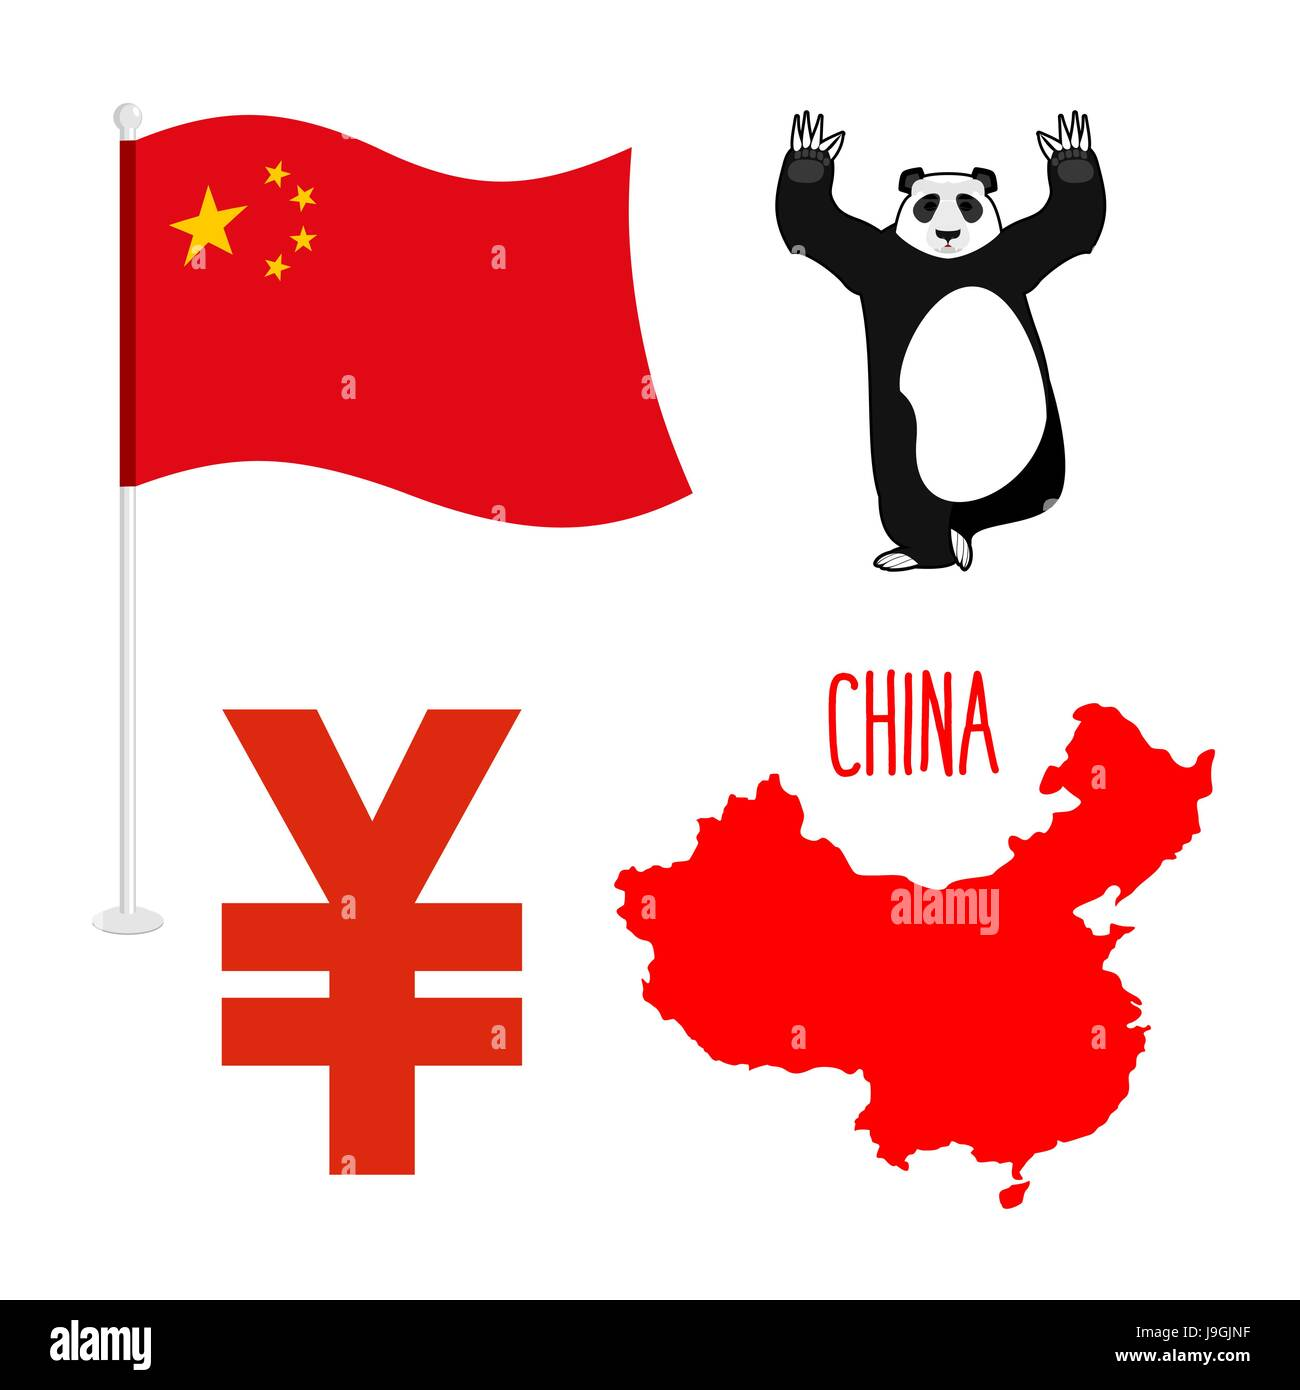 China symbol icons set map and flag of country sign of national china symbol icons set map and flag of country sign of national currency yen panda bear chinese national animal biocorpaavc Image collections